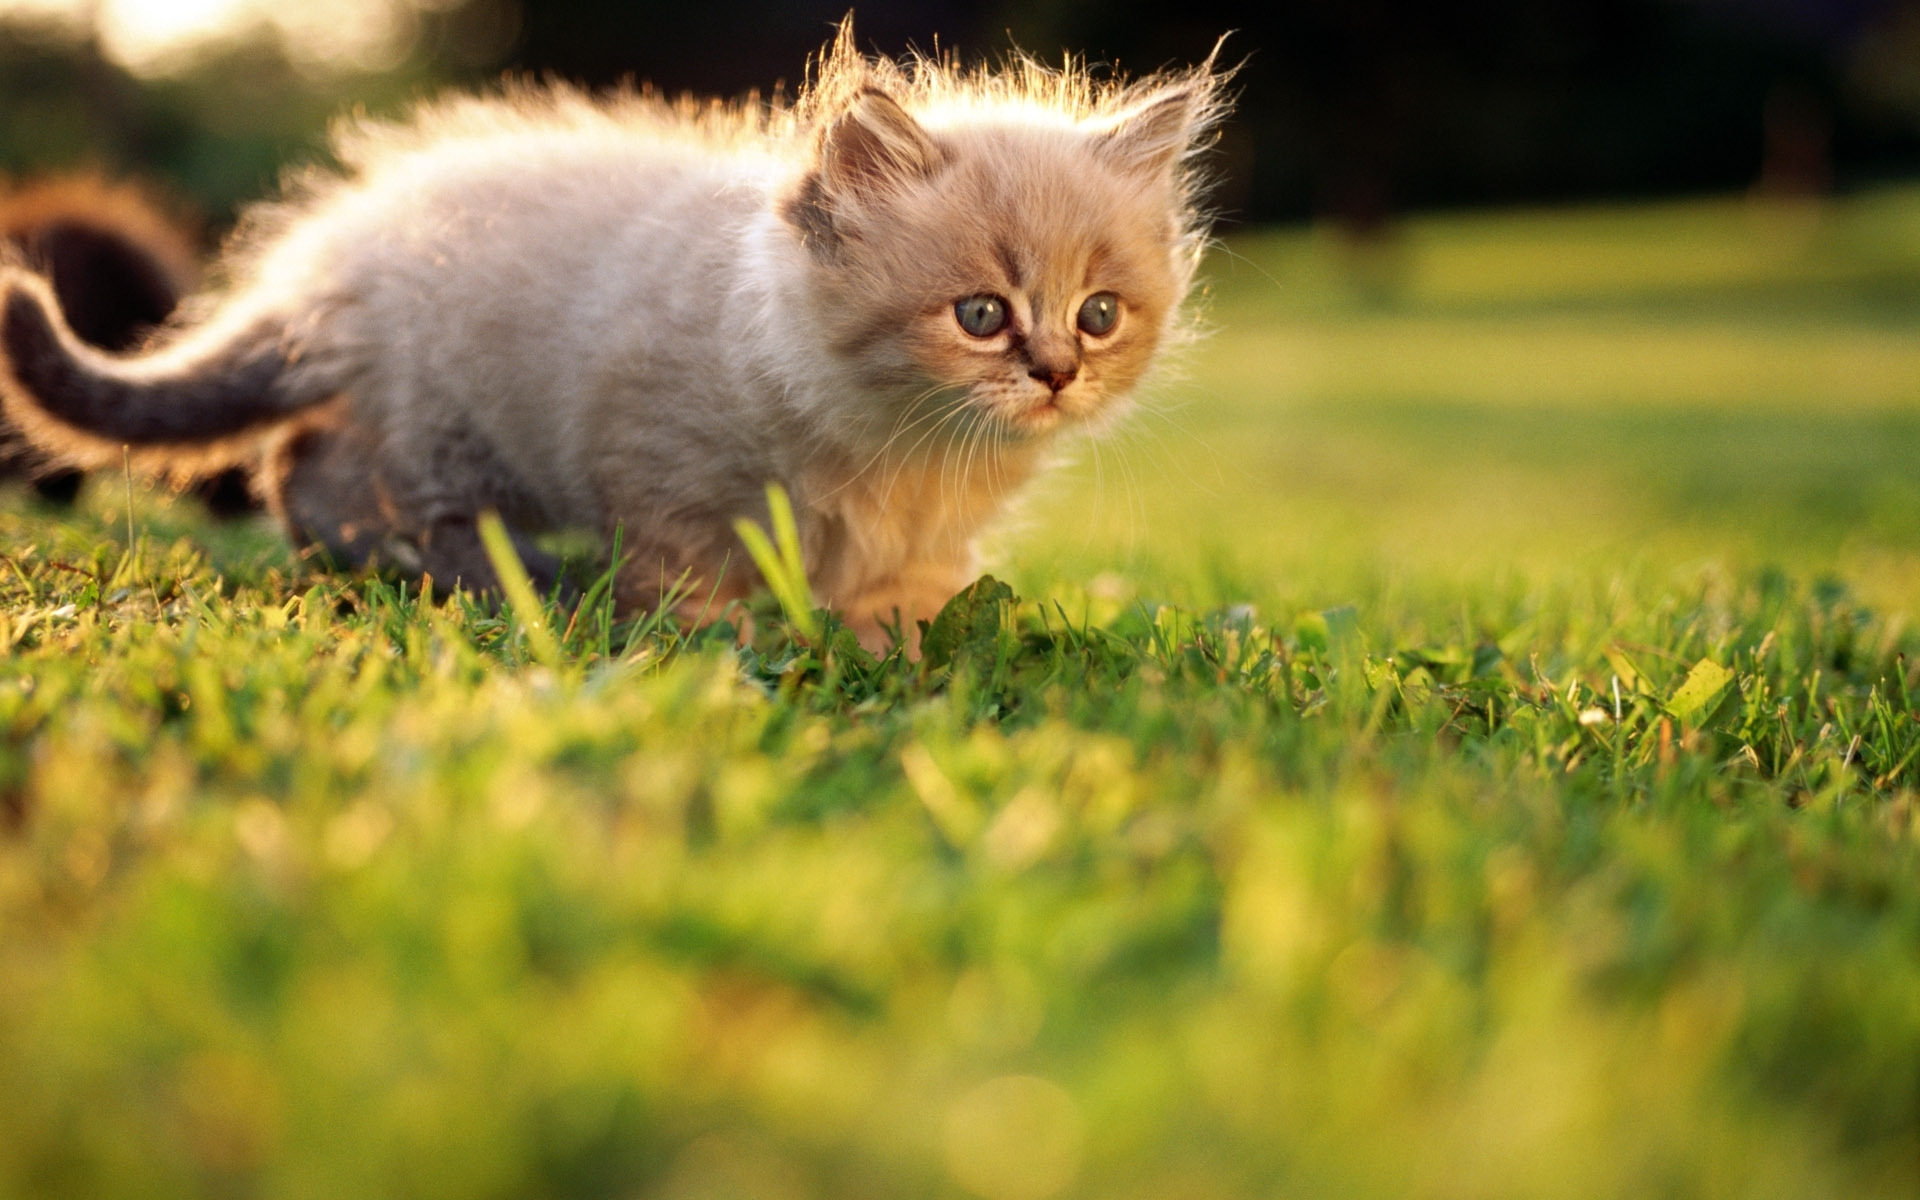 48977 download wallpaper Animals, Cats screensavers and pictures for free